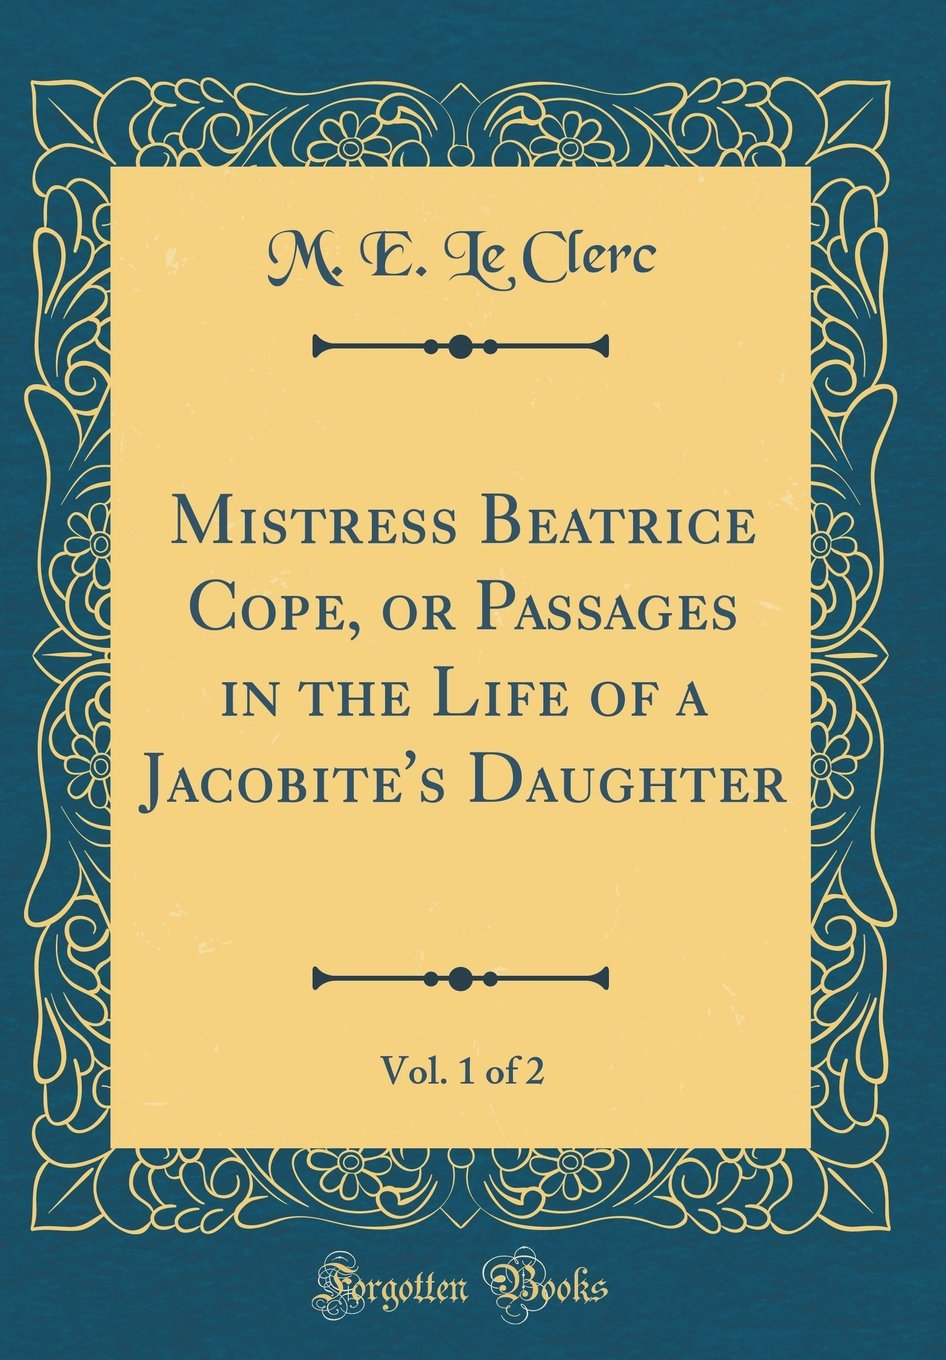 Mistress Beatrice Cope, or Passages in the Life of a Jacobite's Daughter, Vol. 1 of 2 (Classic Reprint) pdf epub